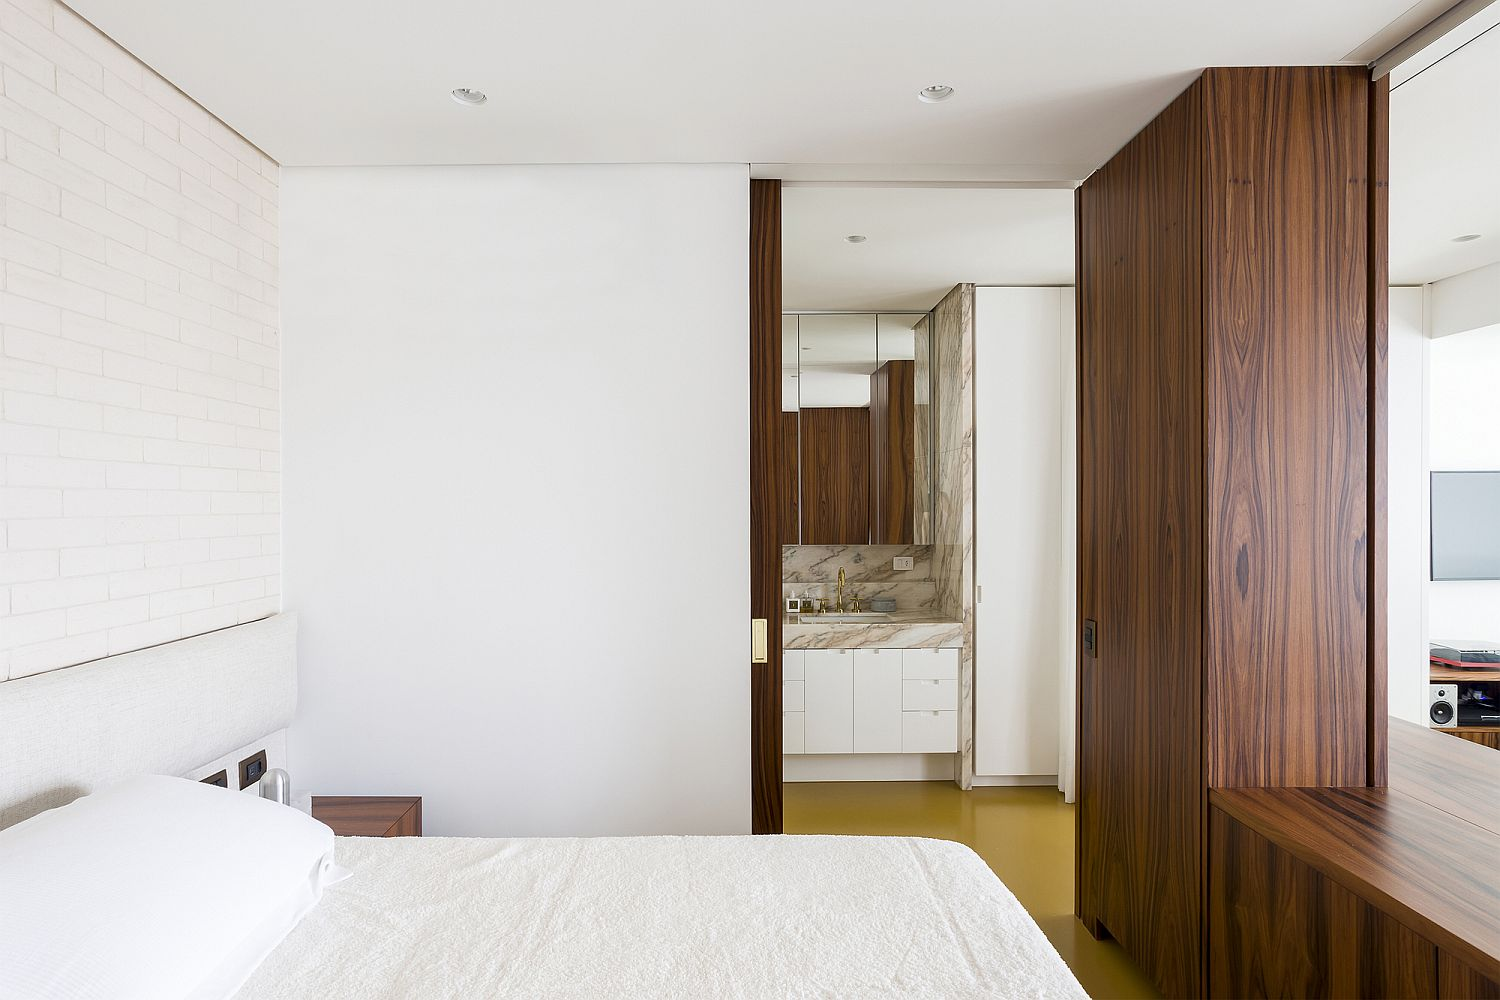 Look inside the custom bedroom and bathroom of the apartment